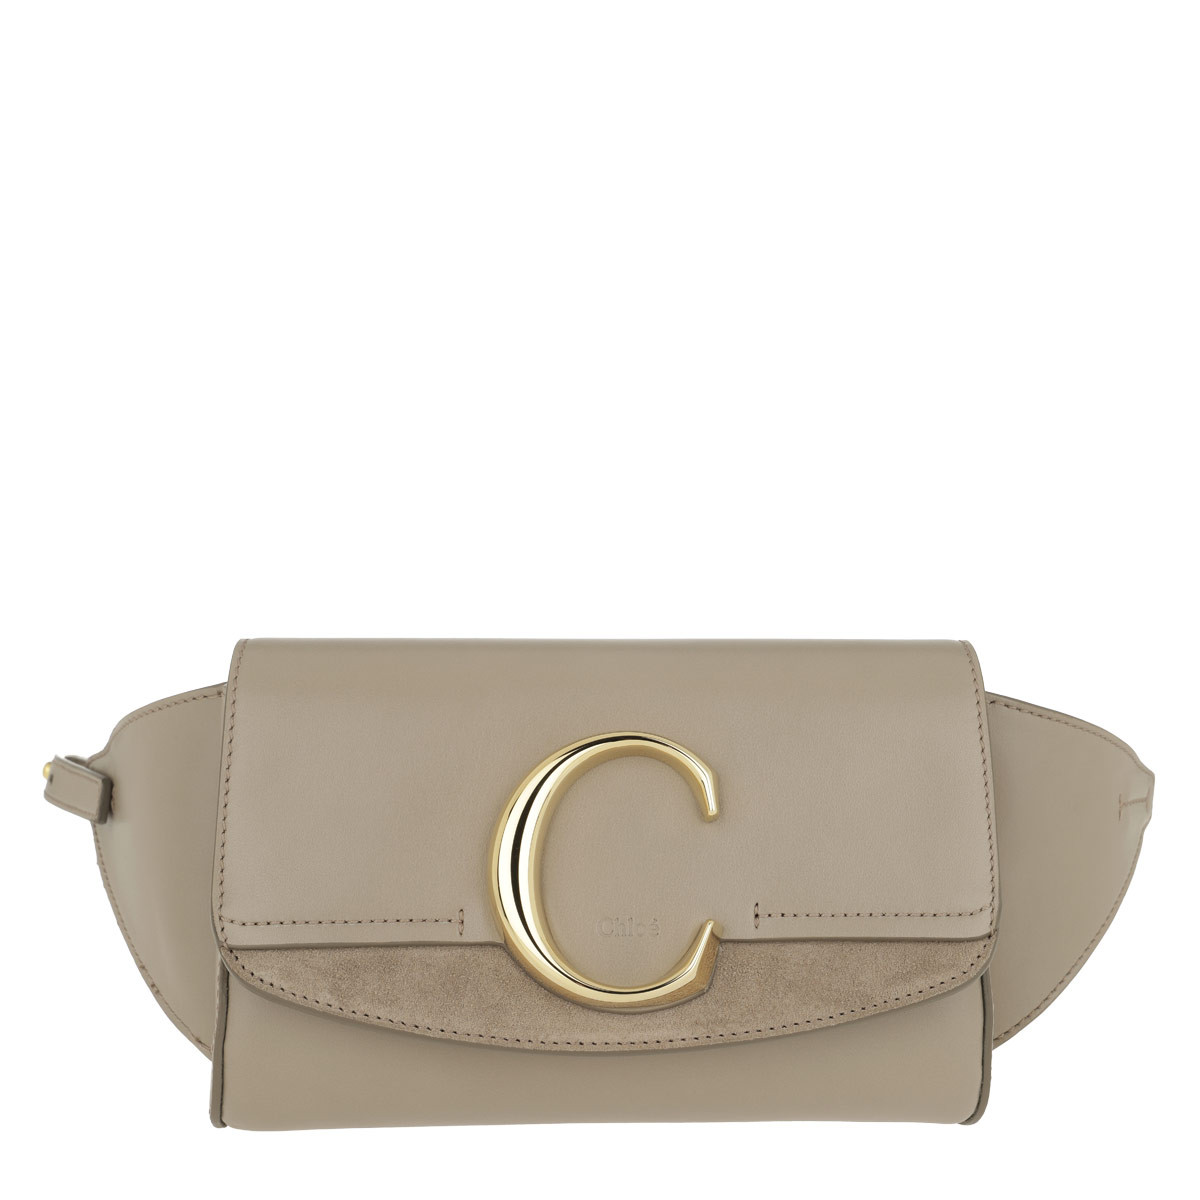 Chloé Gürteltasche - Chloé C Belt Bag Motty Grey - in beige - für Damen